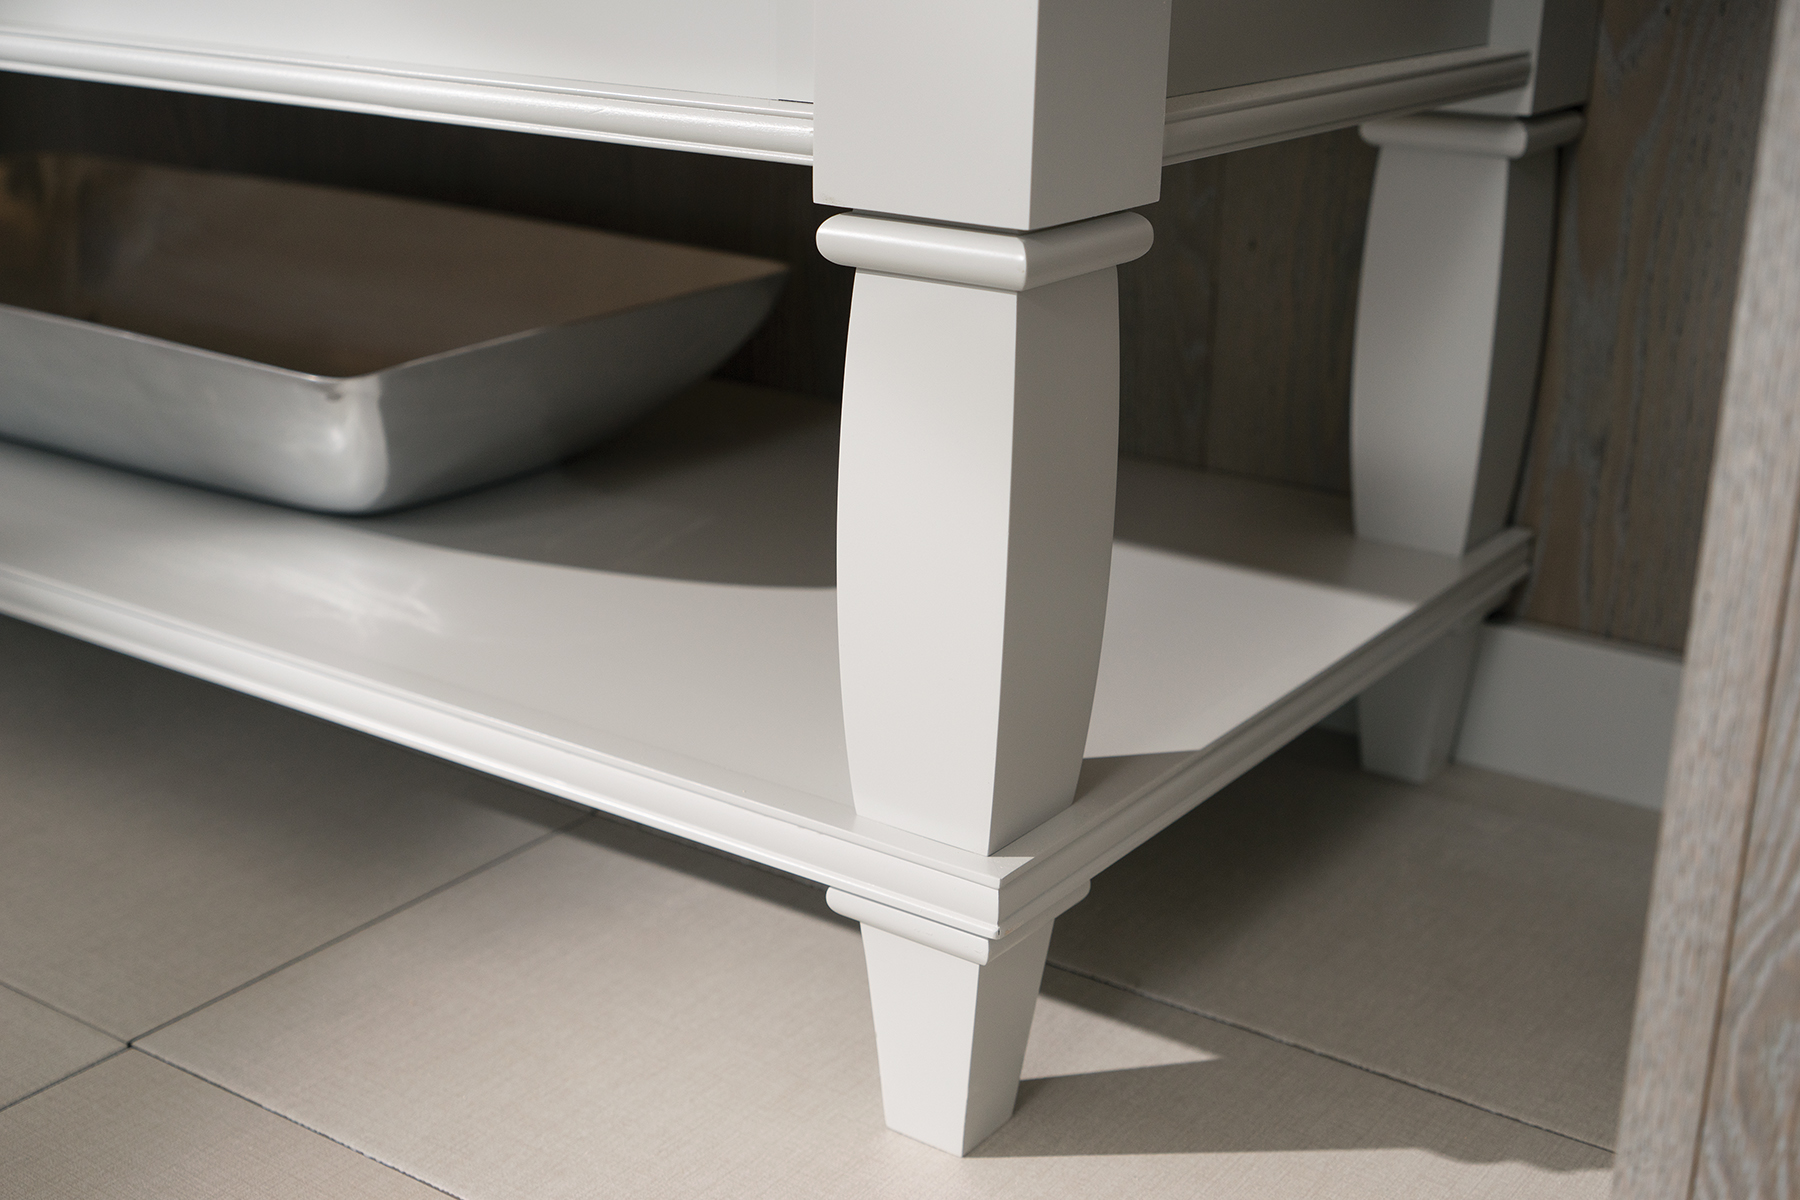 A transitional style turned post on a bathroom furniture vanity by Dura Supreme Cabinetry.